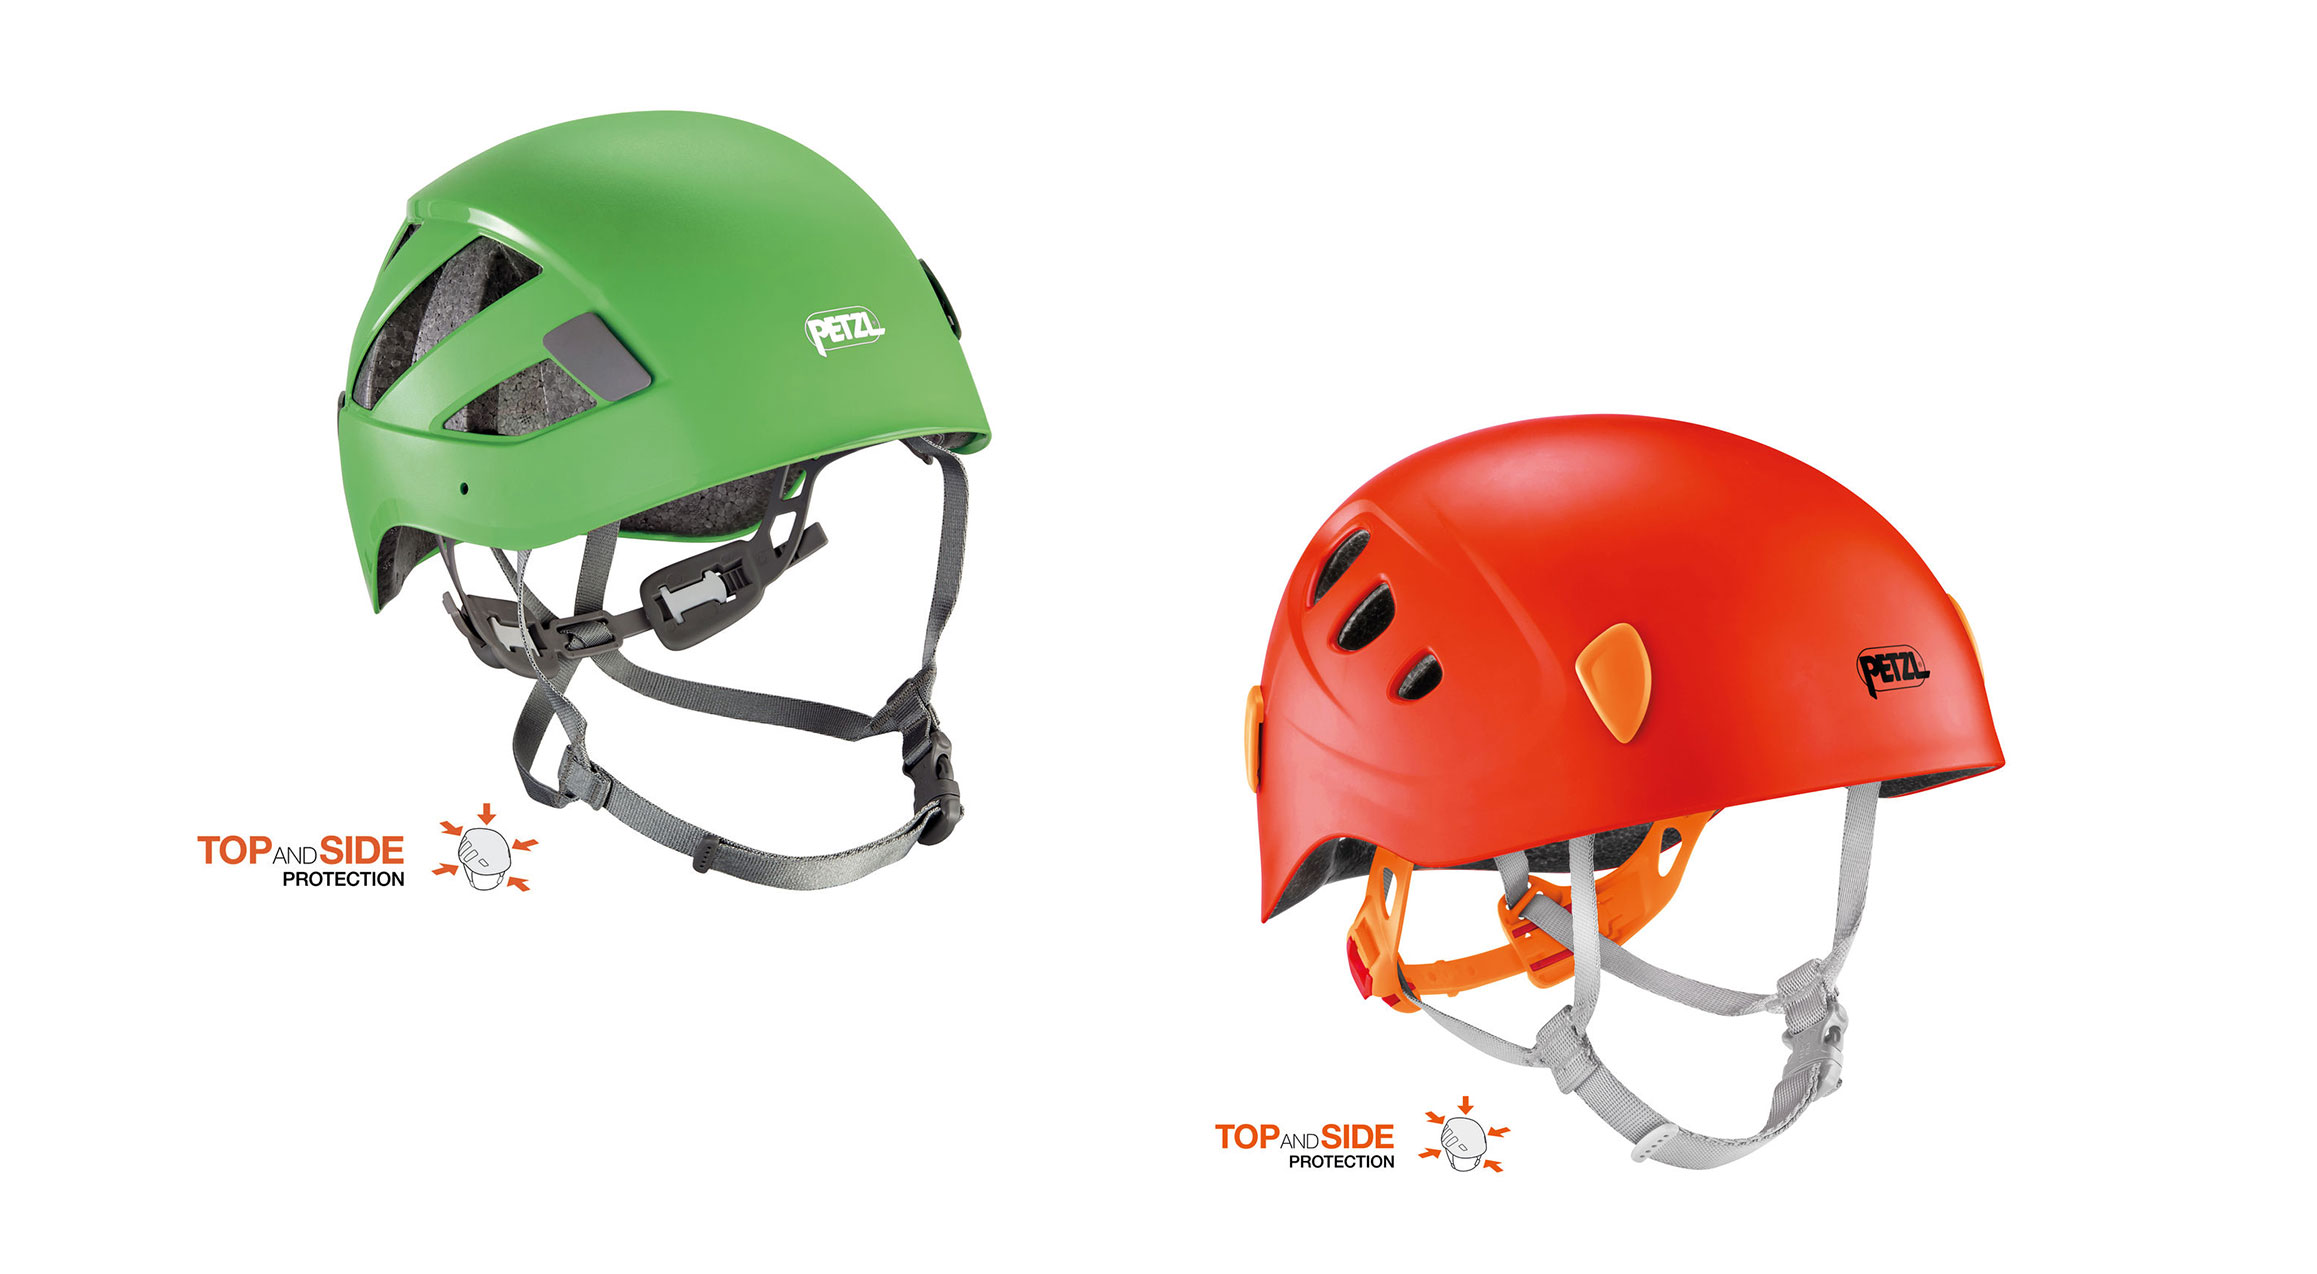 37b8d870bae The Great Debate: Helmets At The Crag - Rock and Ice